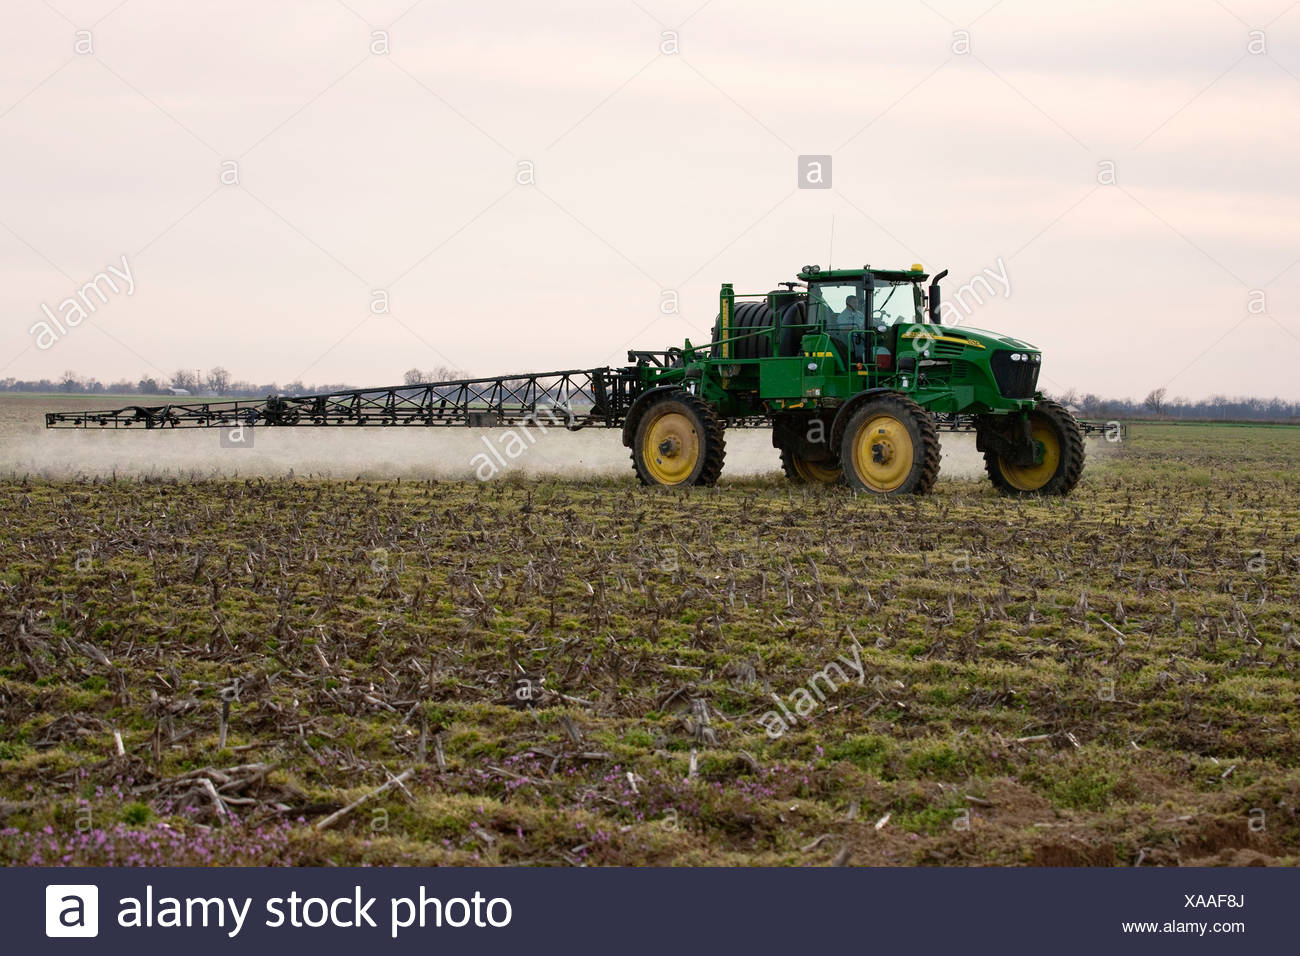 A John Deere sprayer applies pre-plant burndown herbicide in late Winter to a field that will be no-till planted to cotton. - Stock Image